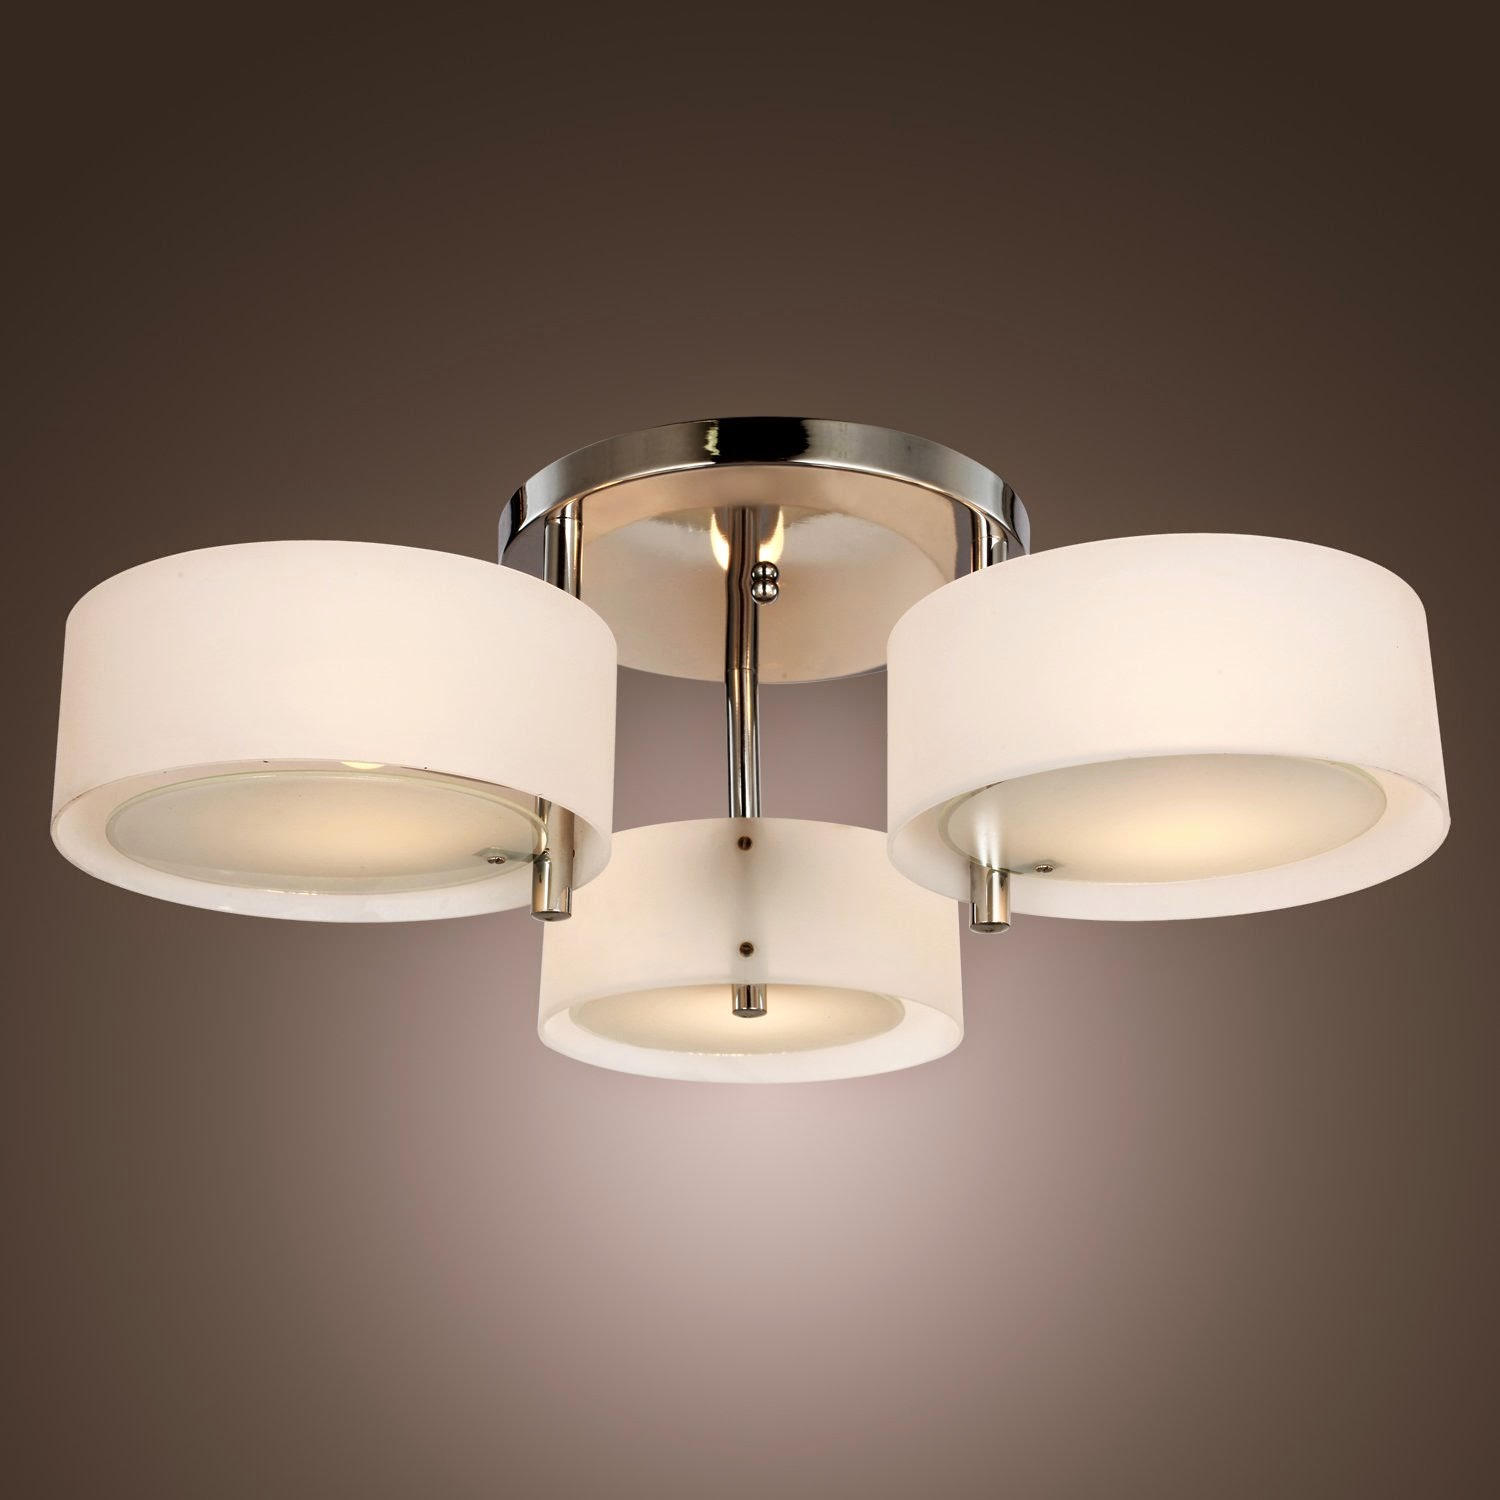 Ceiling light fixture with outlet - Lights and chandeliers ...